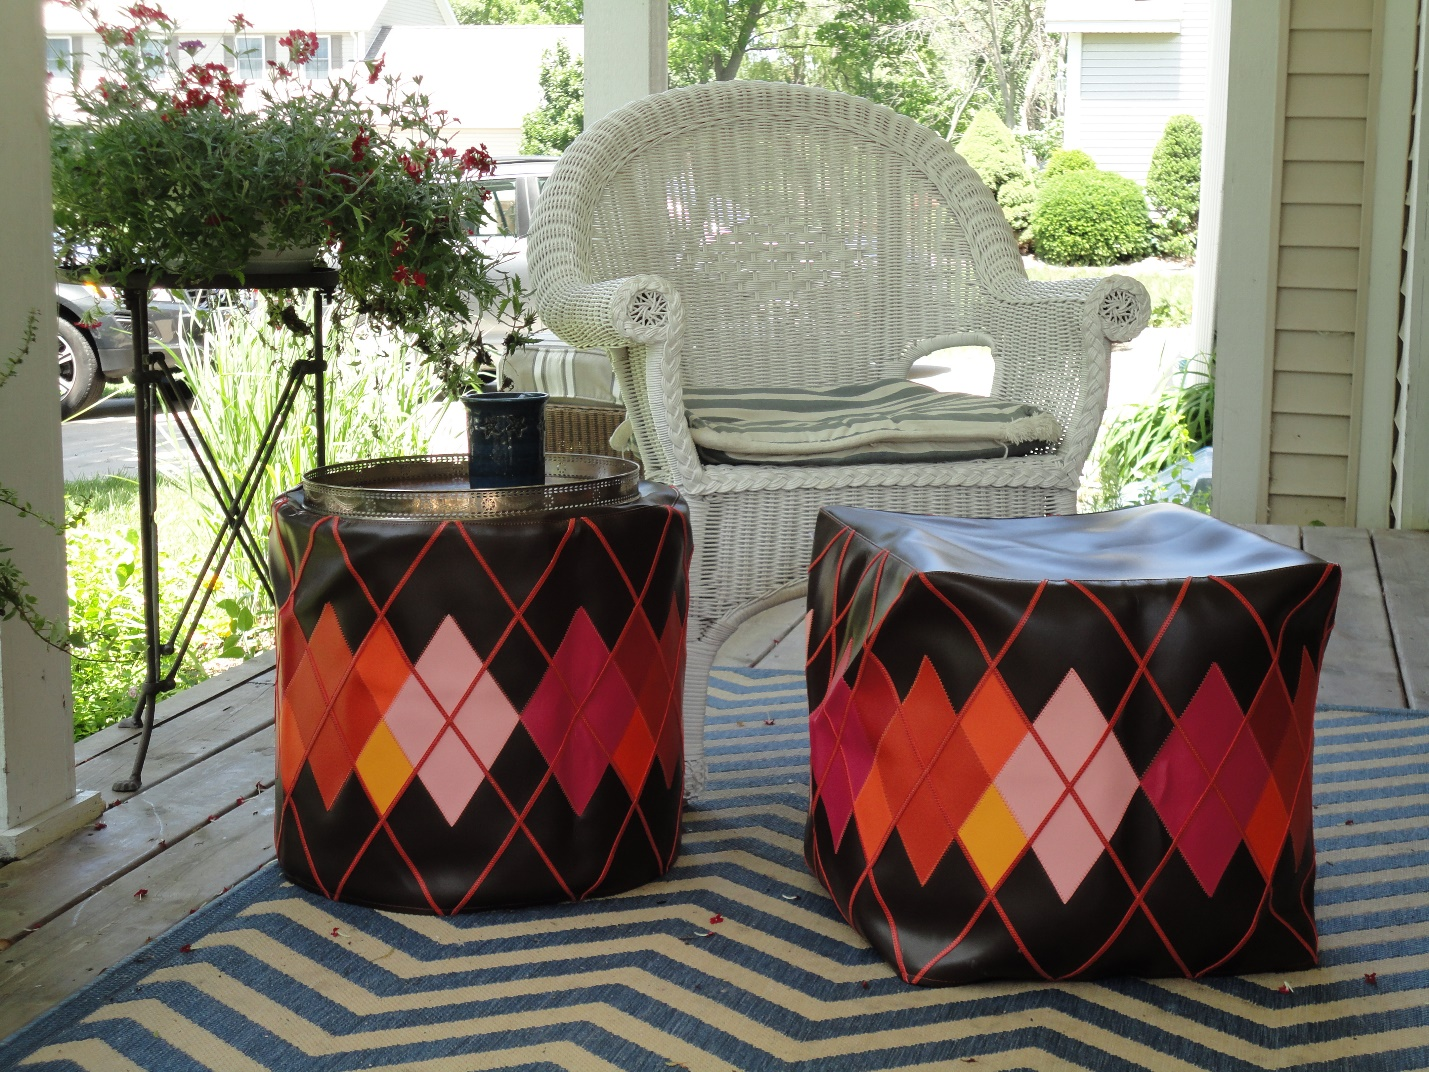 Patio Furniture, Poolside Seating & Accessories